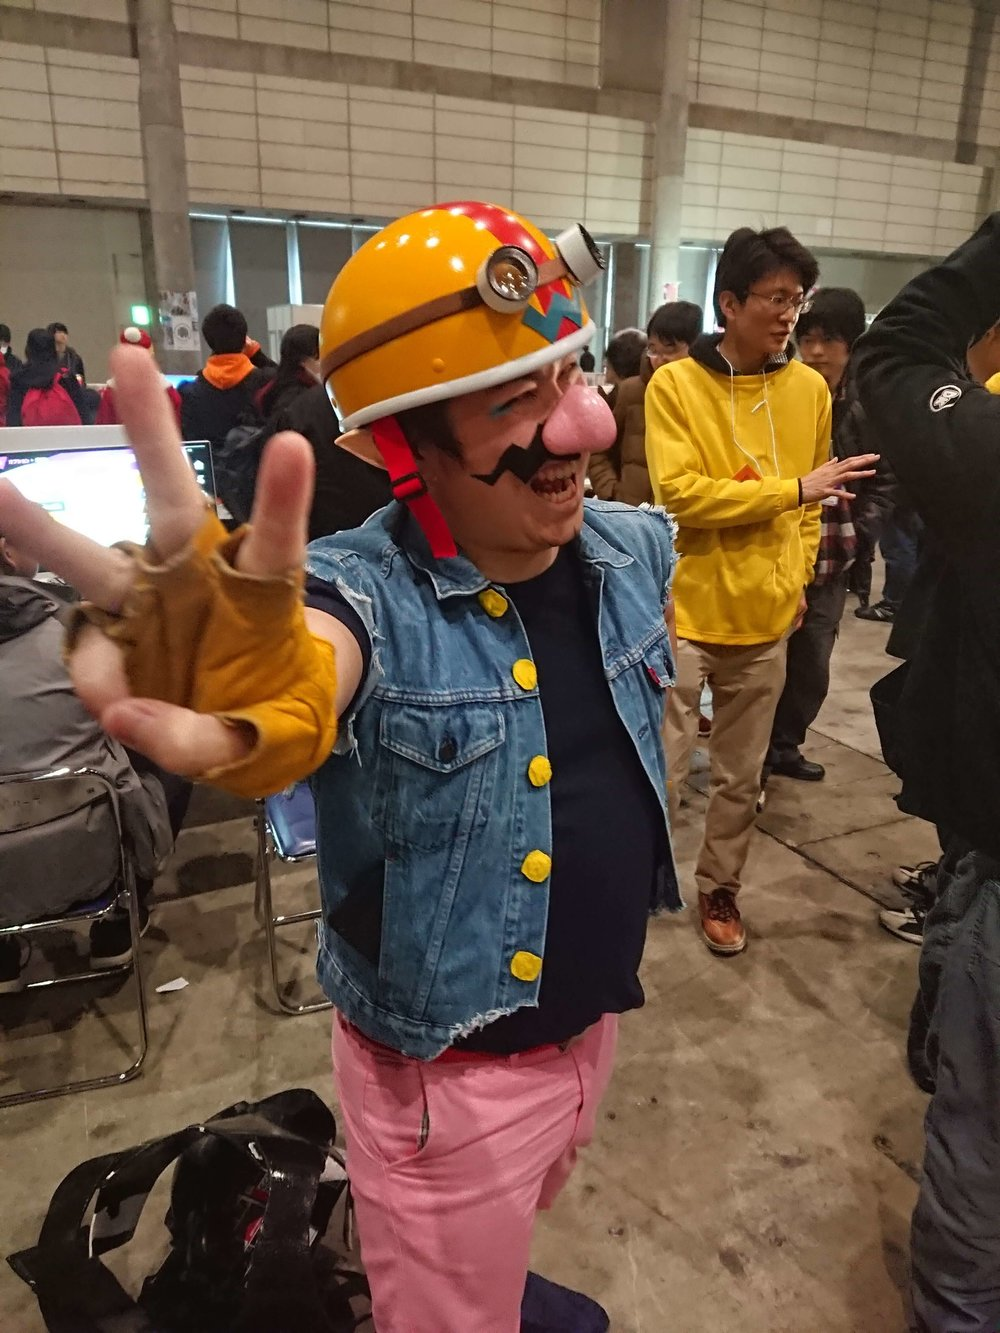 Awesome Wario Cosplayer in Between Smash Games